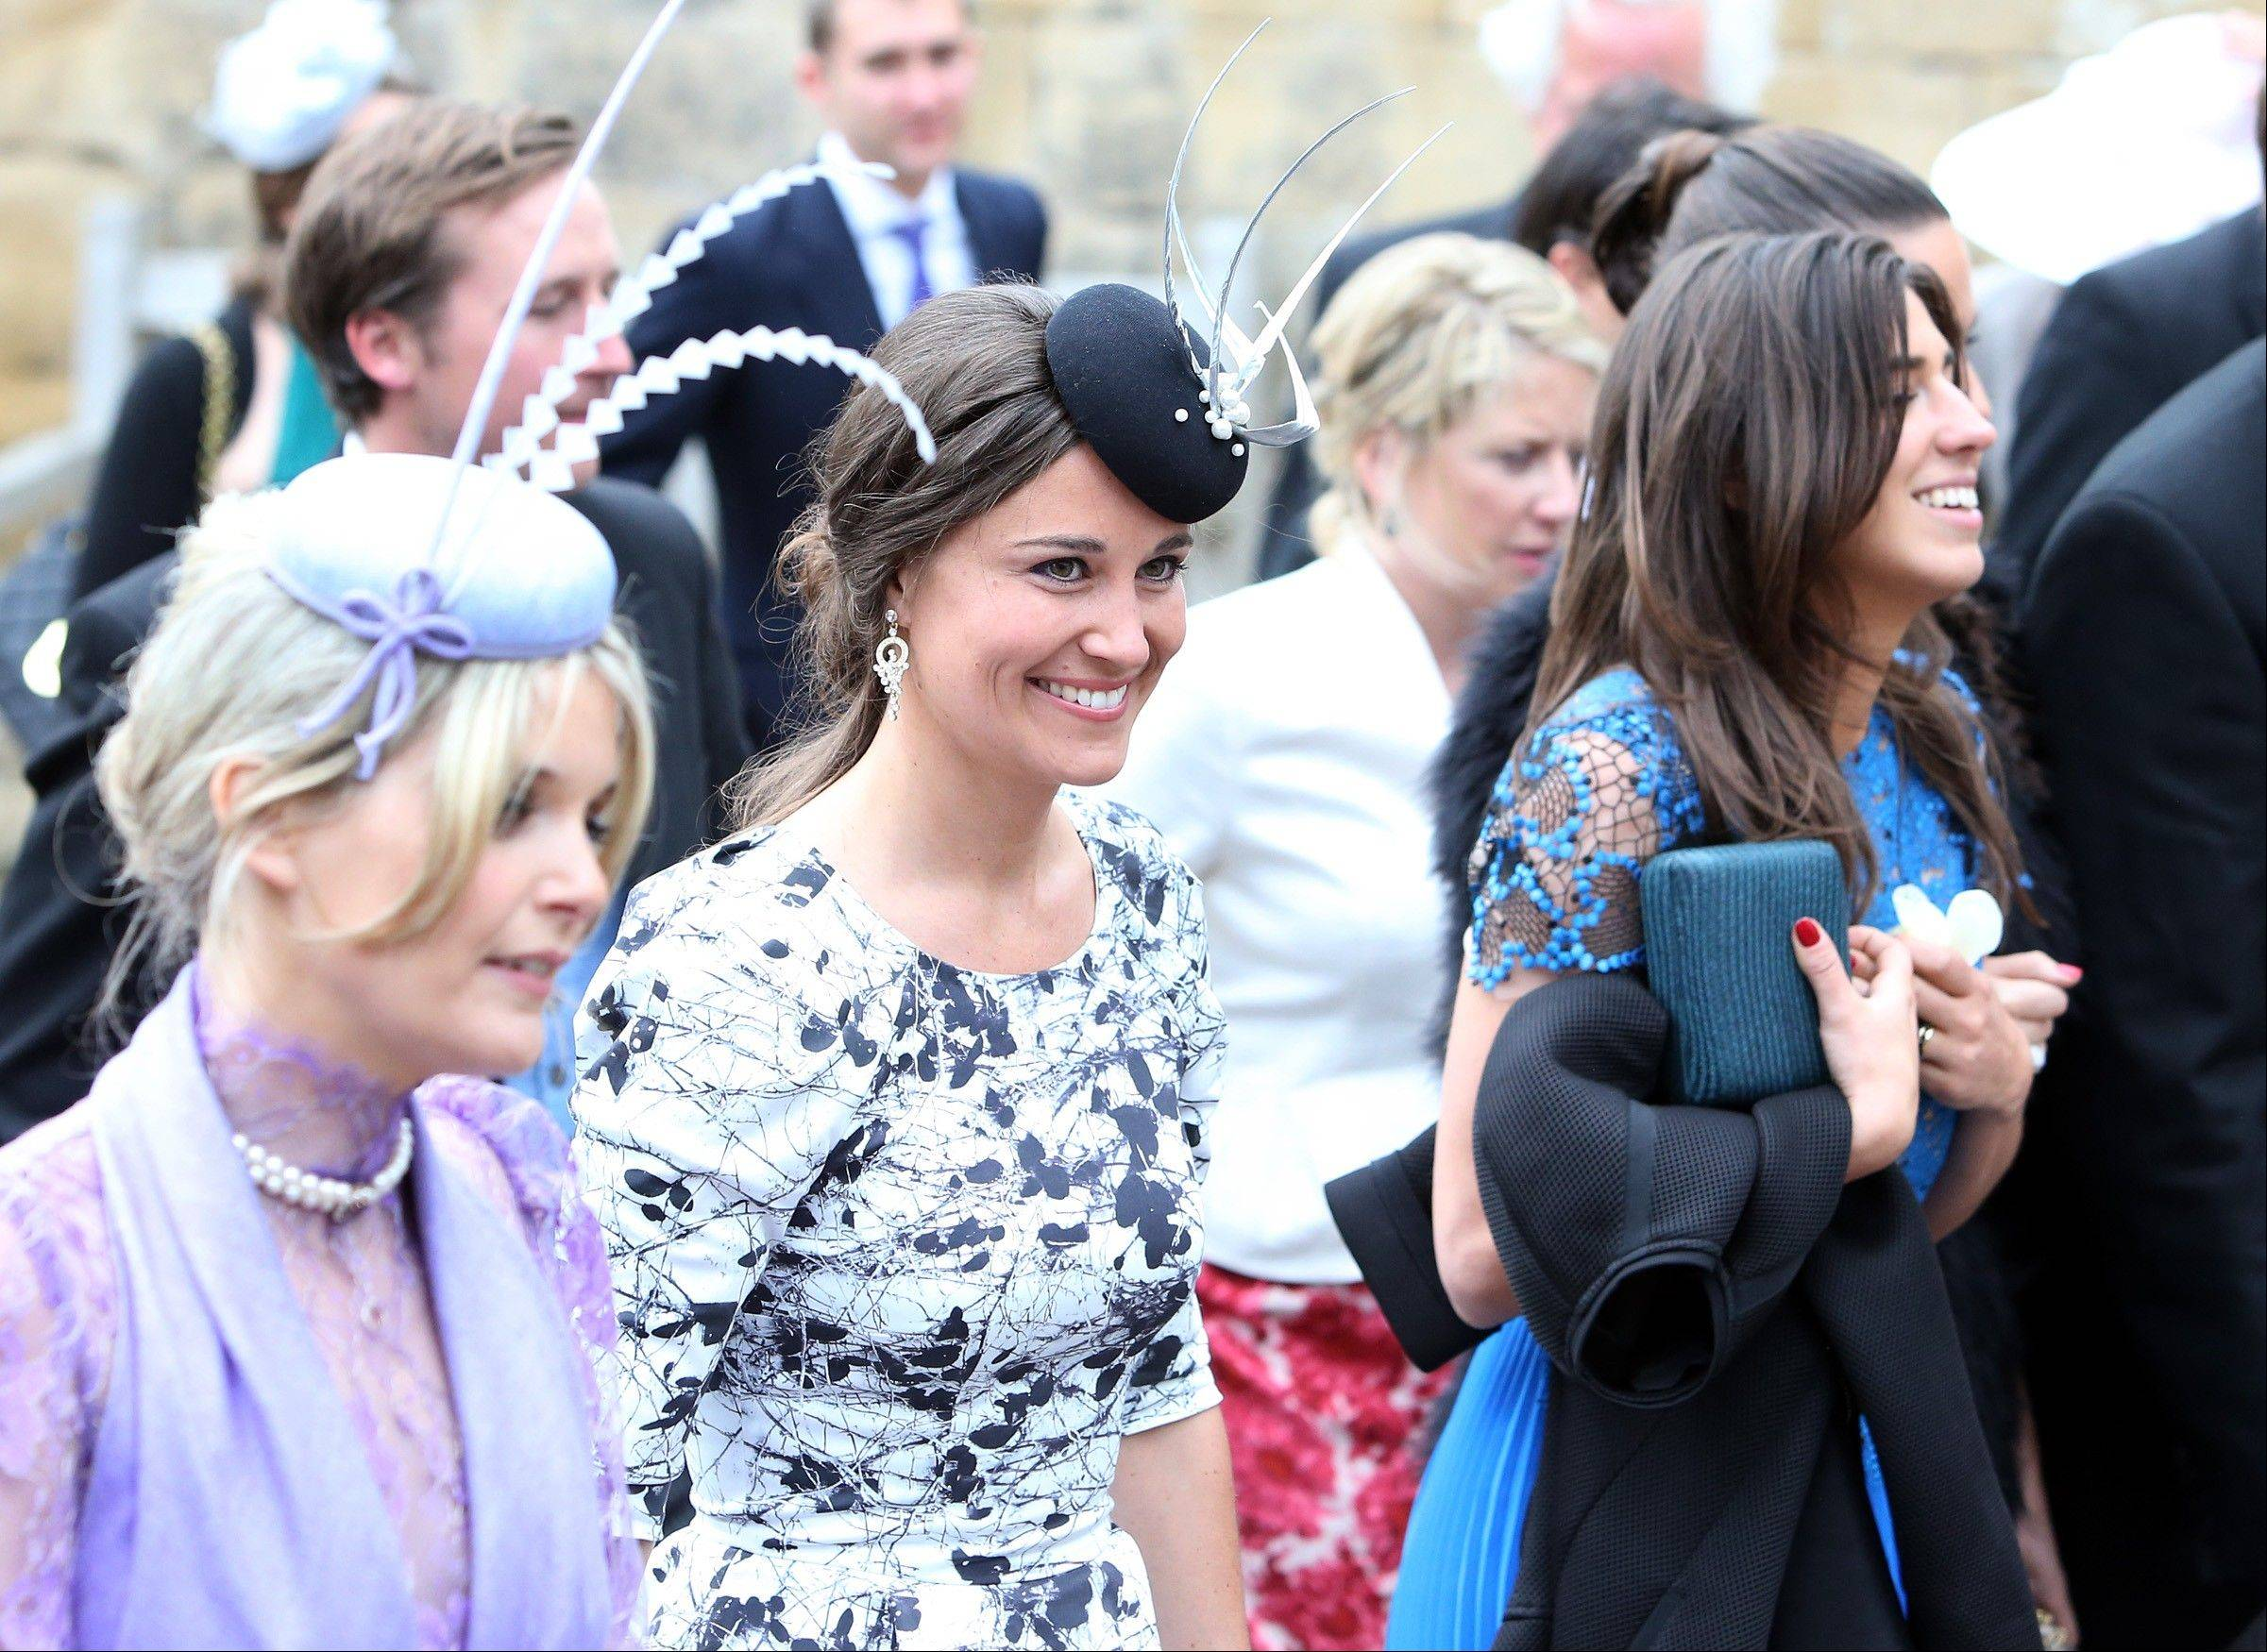 Britain's Pippa Middleton, centre, leaves after attending the wedding of the Duke and Duchess of Northumberland's daughter Lady Melissa Percy to chartered surveyor Thomas van Straubenzee at St Michael's Church in Alnwick, England, Saturday, June 22, 2013.